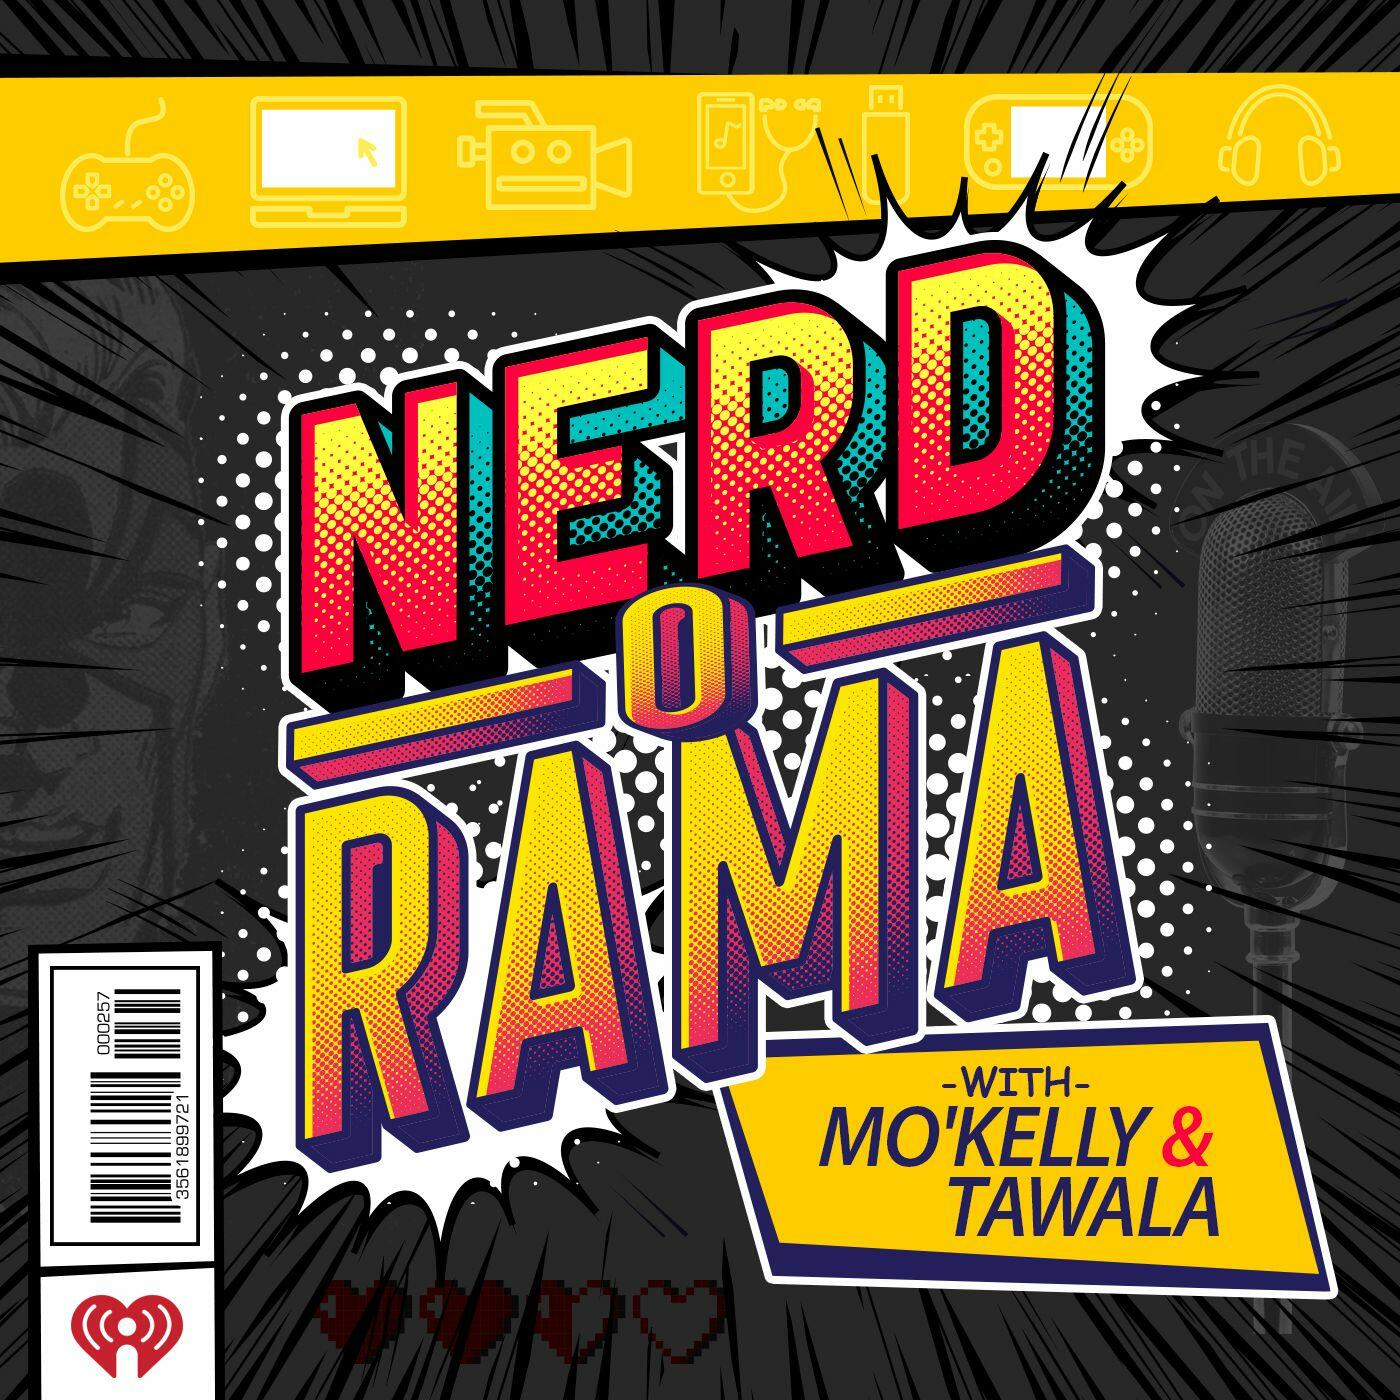 Listen to The Future of Marvel, Murdoch, Netflix, The Fallen Order & MORE!!! | Nerd-O-Rama with Mo'Kelly and Tawala! | Podcasts